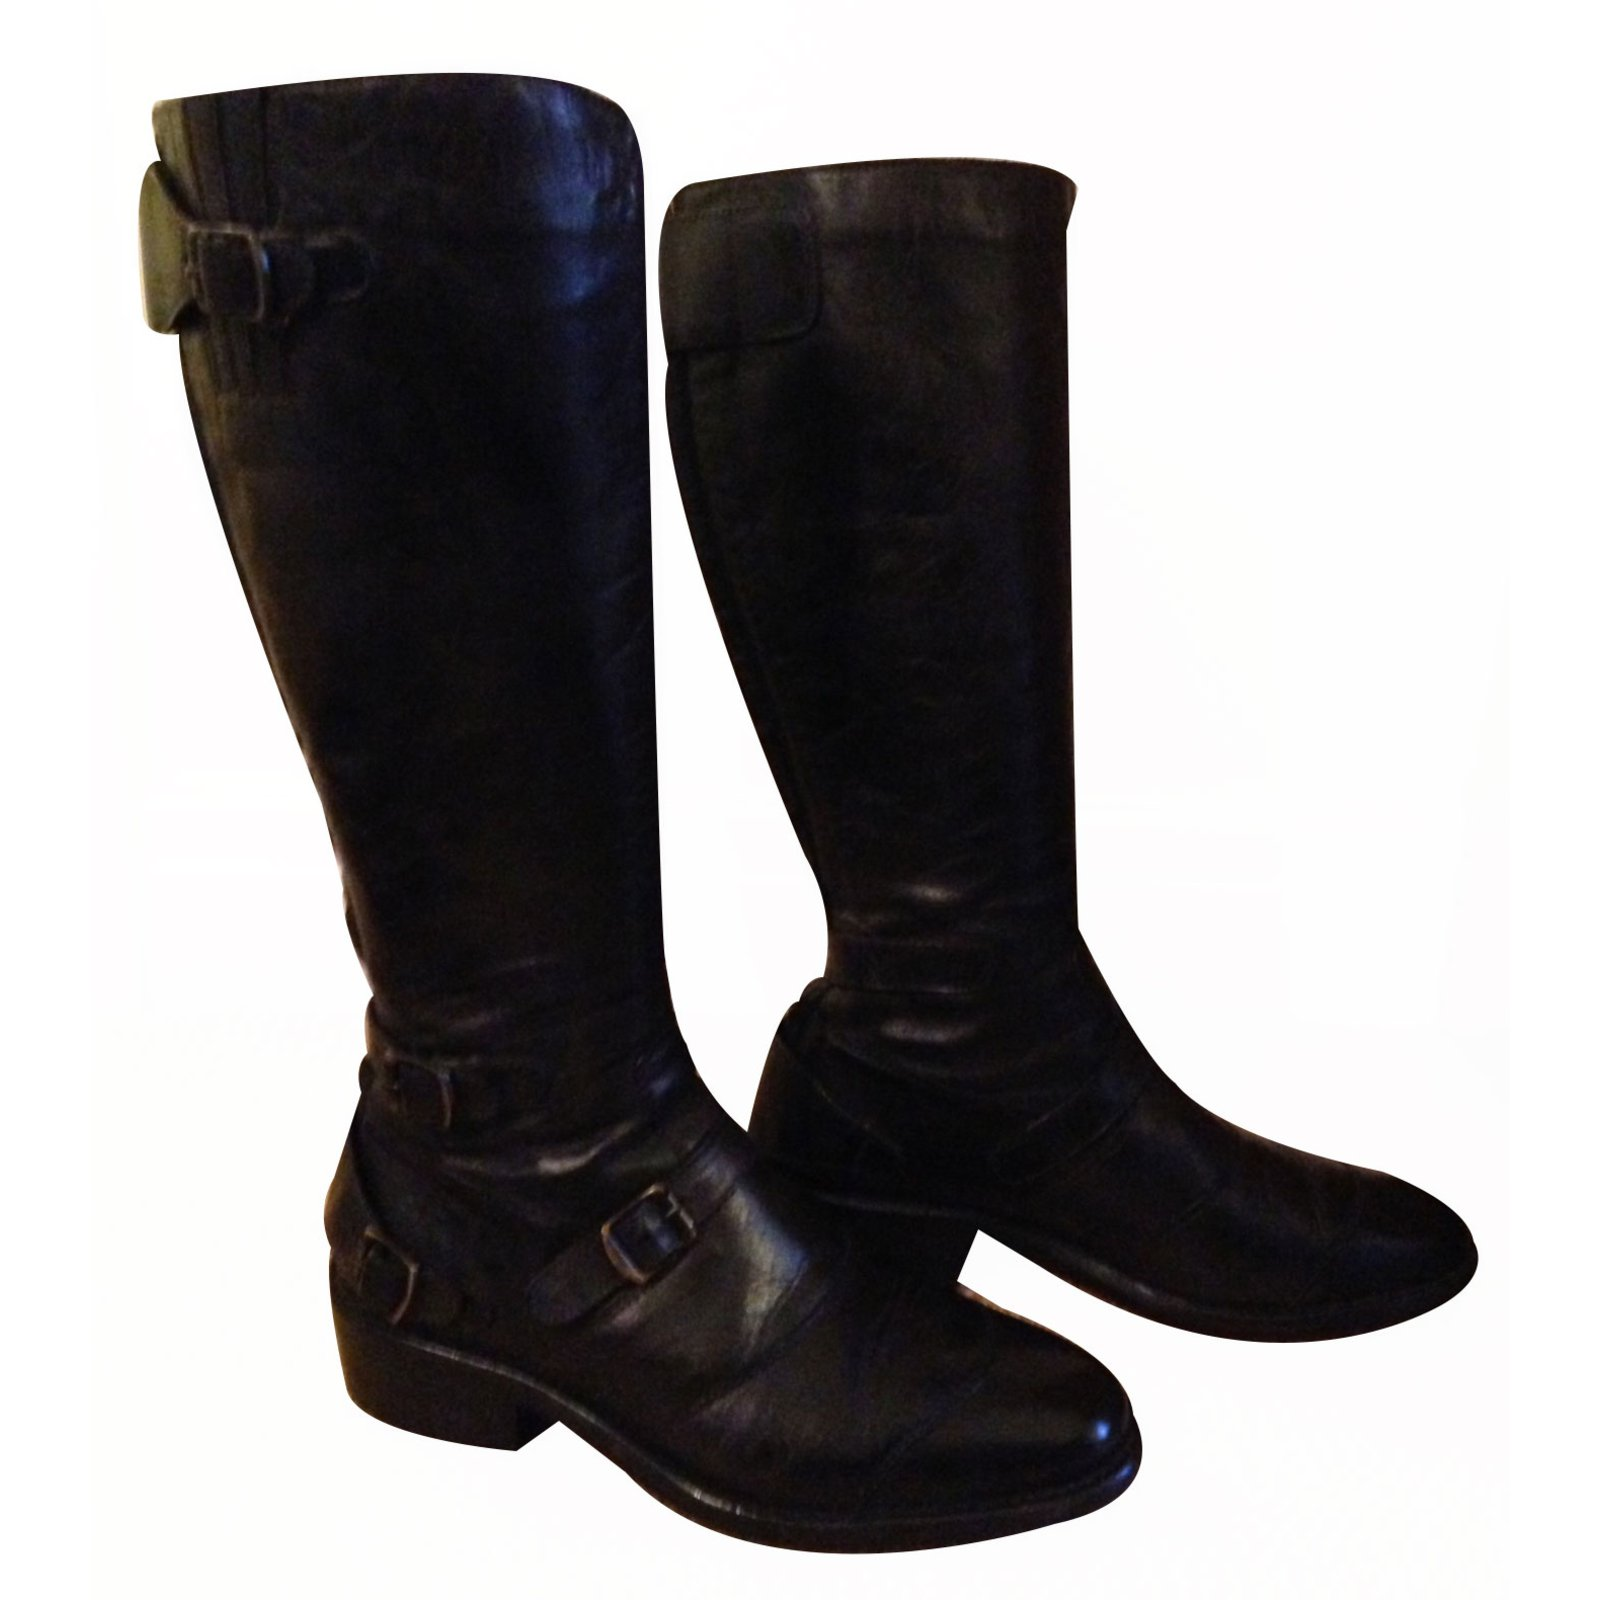 1562e81b99f36 Belstaff Belstaff Trialmaster boots Boots Leather Other ref.17490 ...